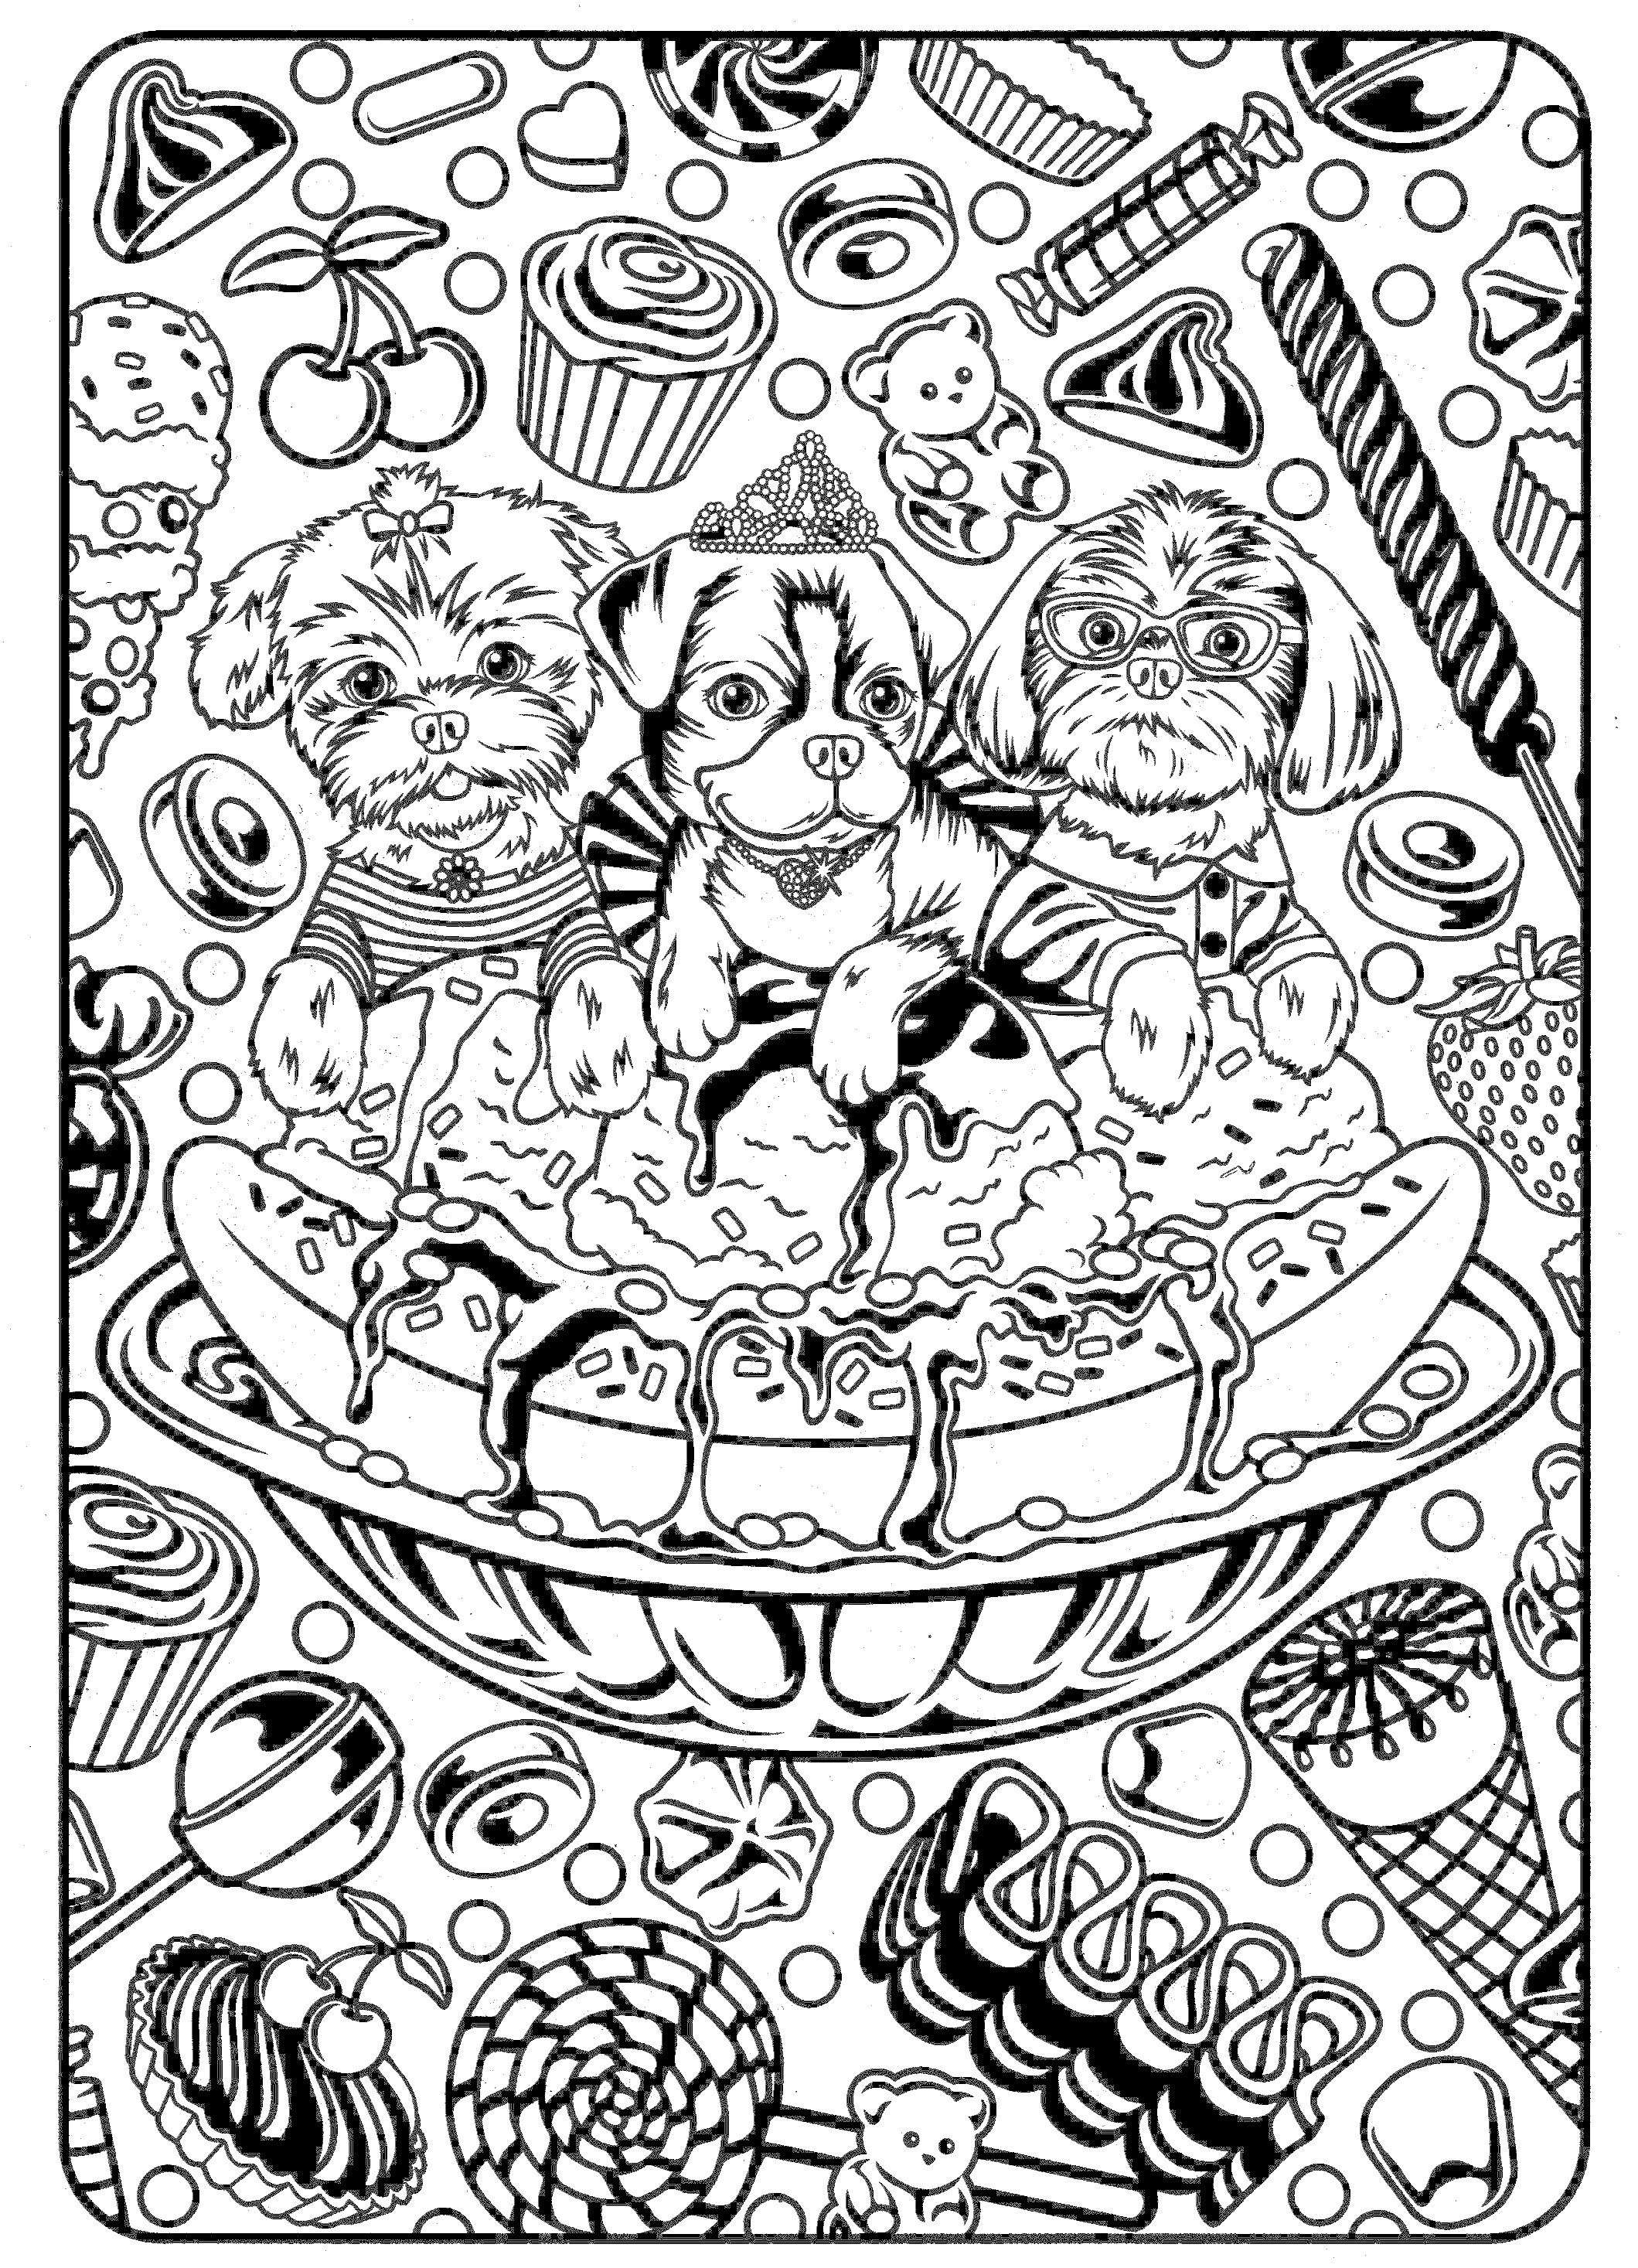 Merry Christmas Dad Coloring Pages With 1 Mom And